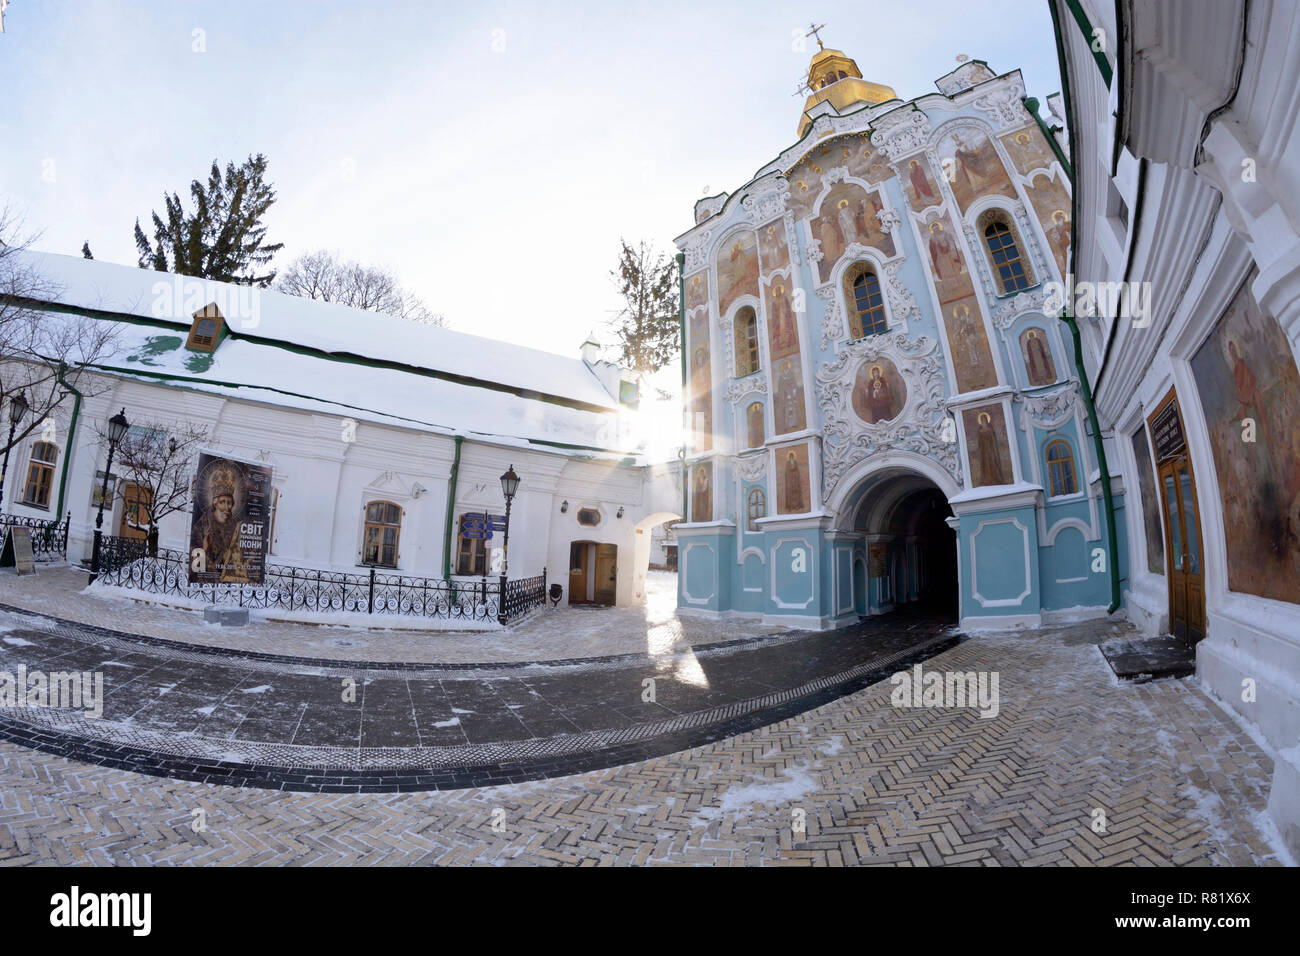 Winter view of the main entrance to the Kiev -Pechersk Lavra with the chapel and the yard. December 11, 2018. Kiev, Ukraine - Stock Image